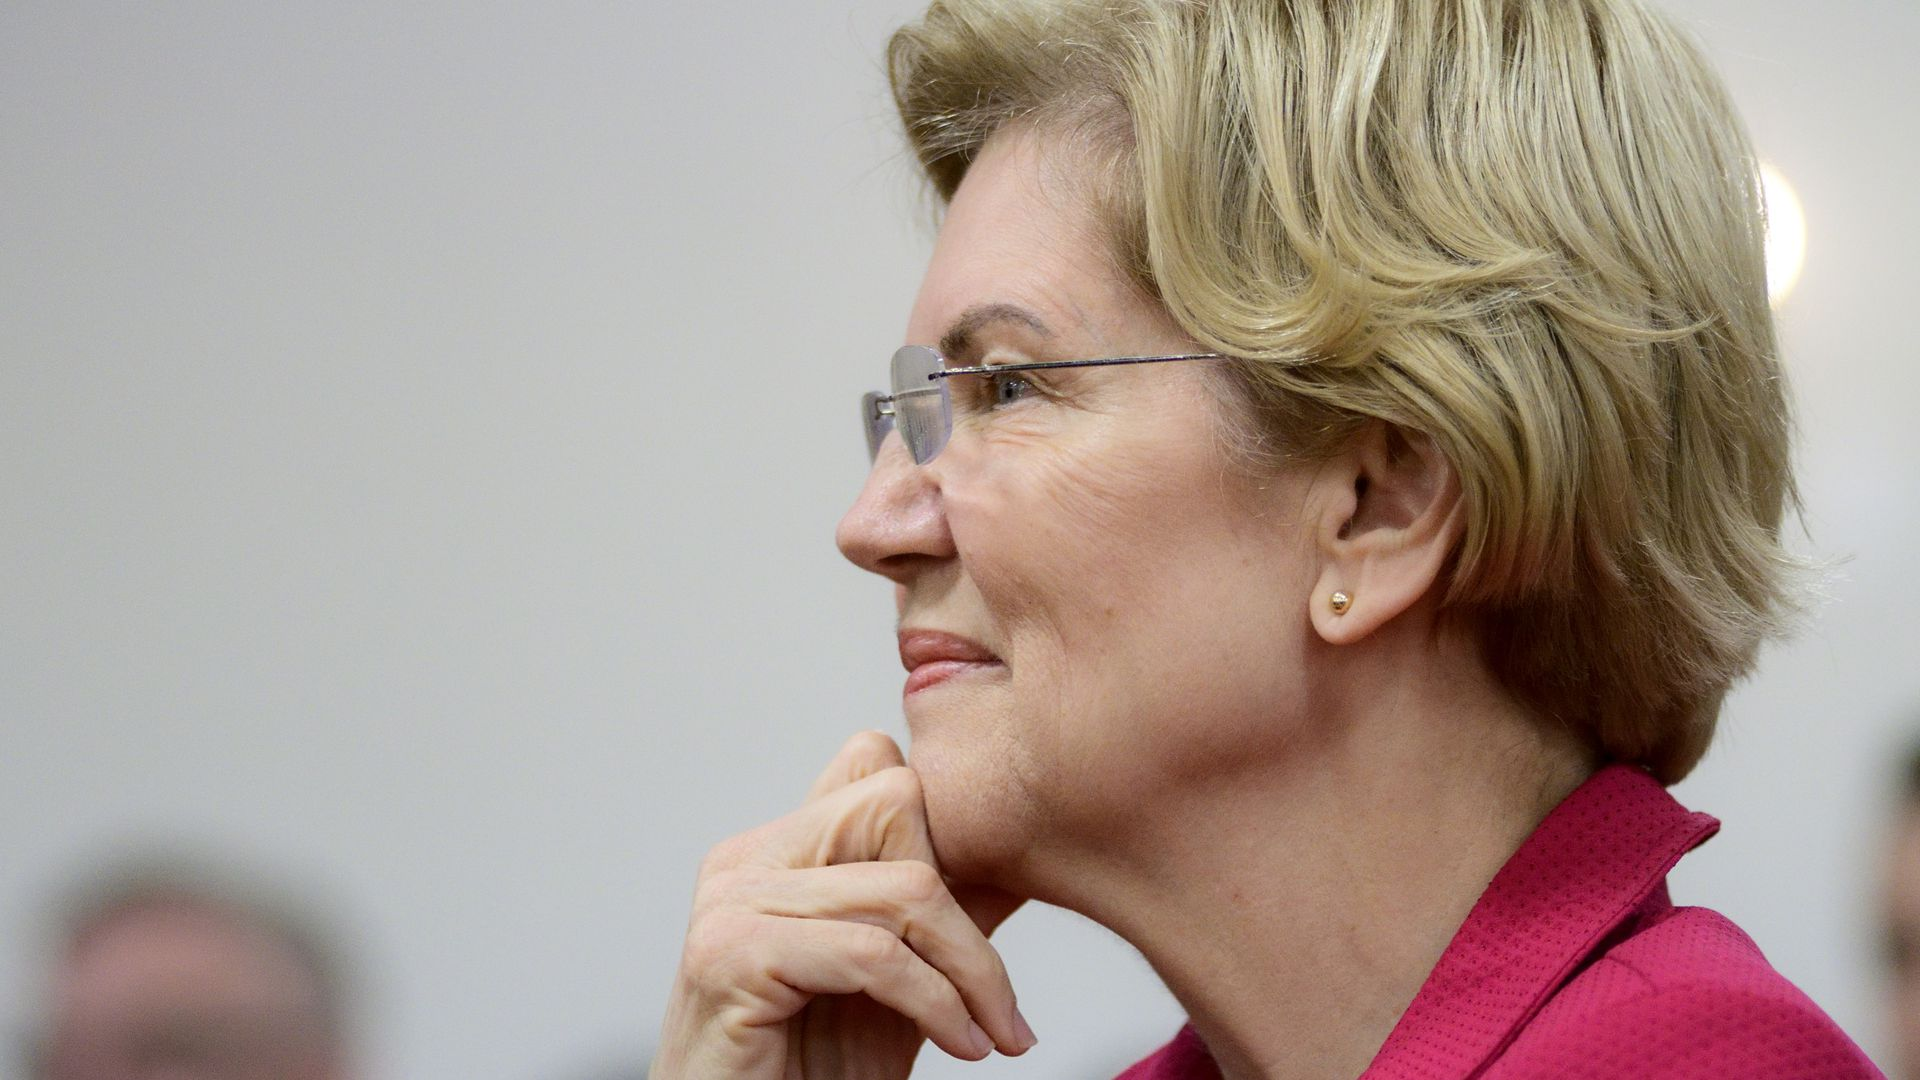 Warren smiling while touching her hand to her face. She is wearing a pink blazer-looking jacket and glasses.